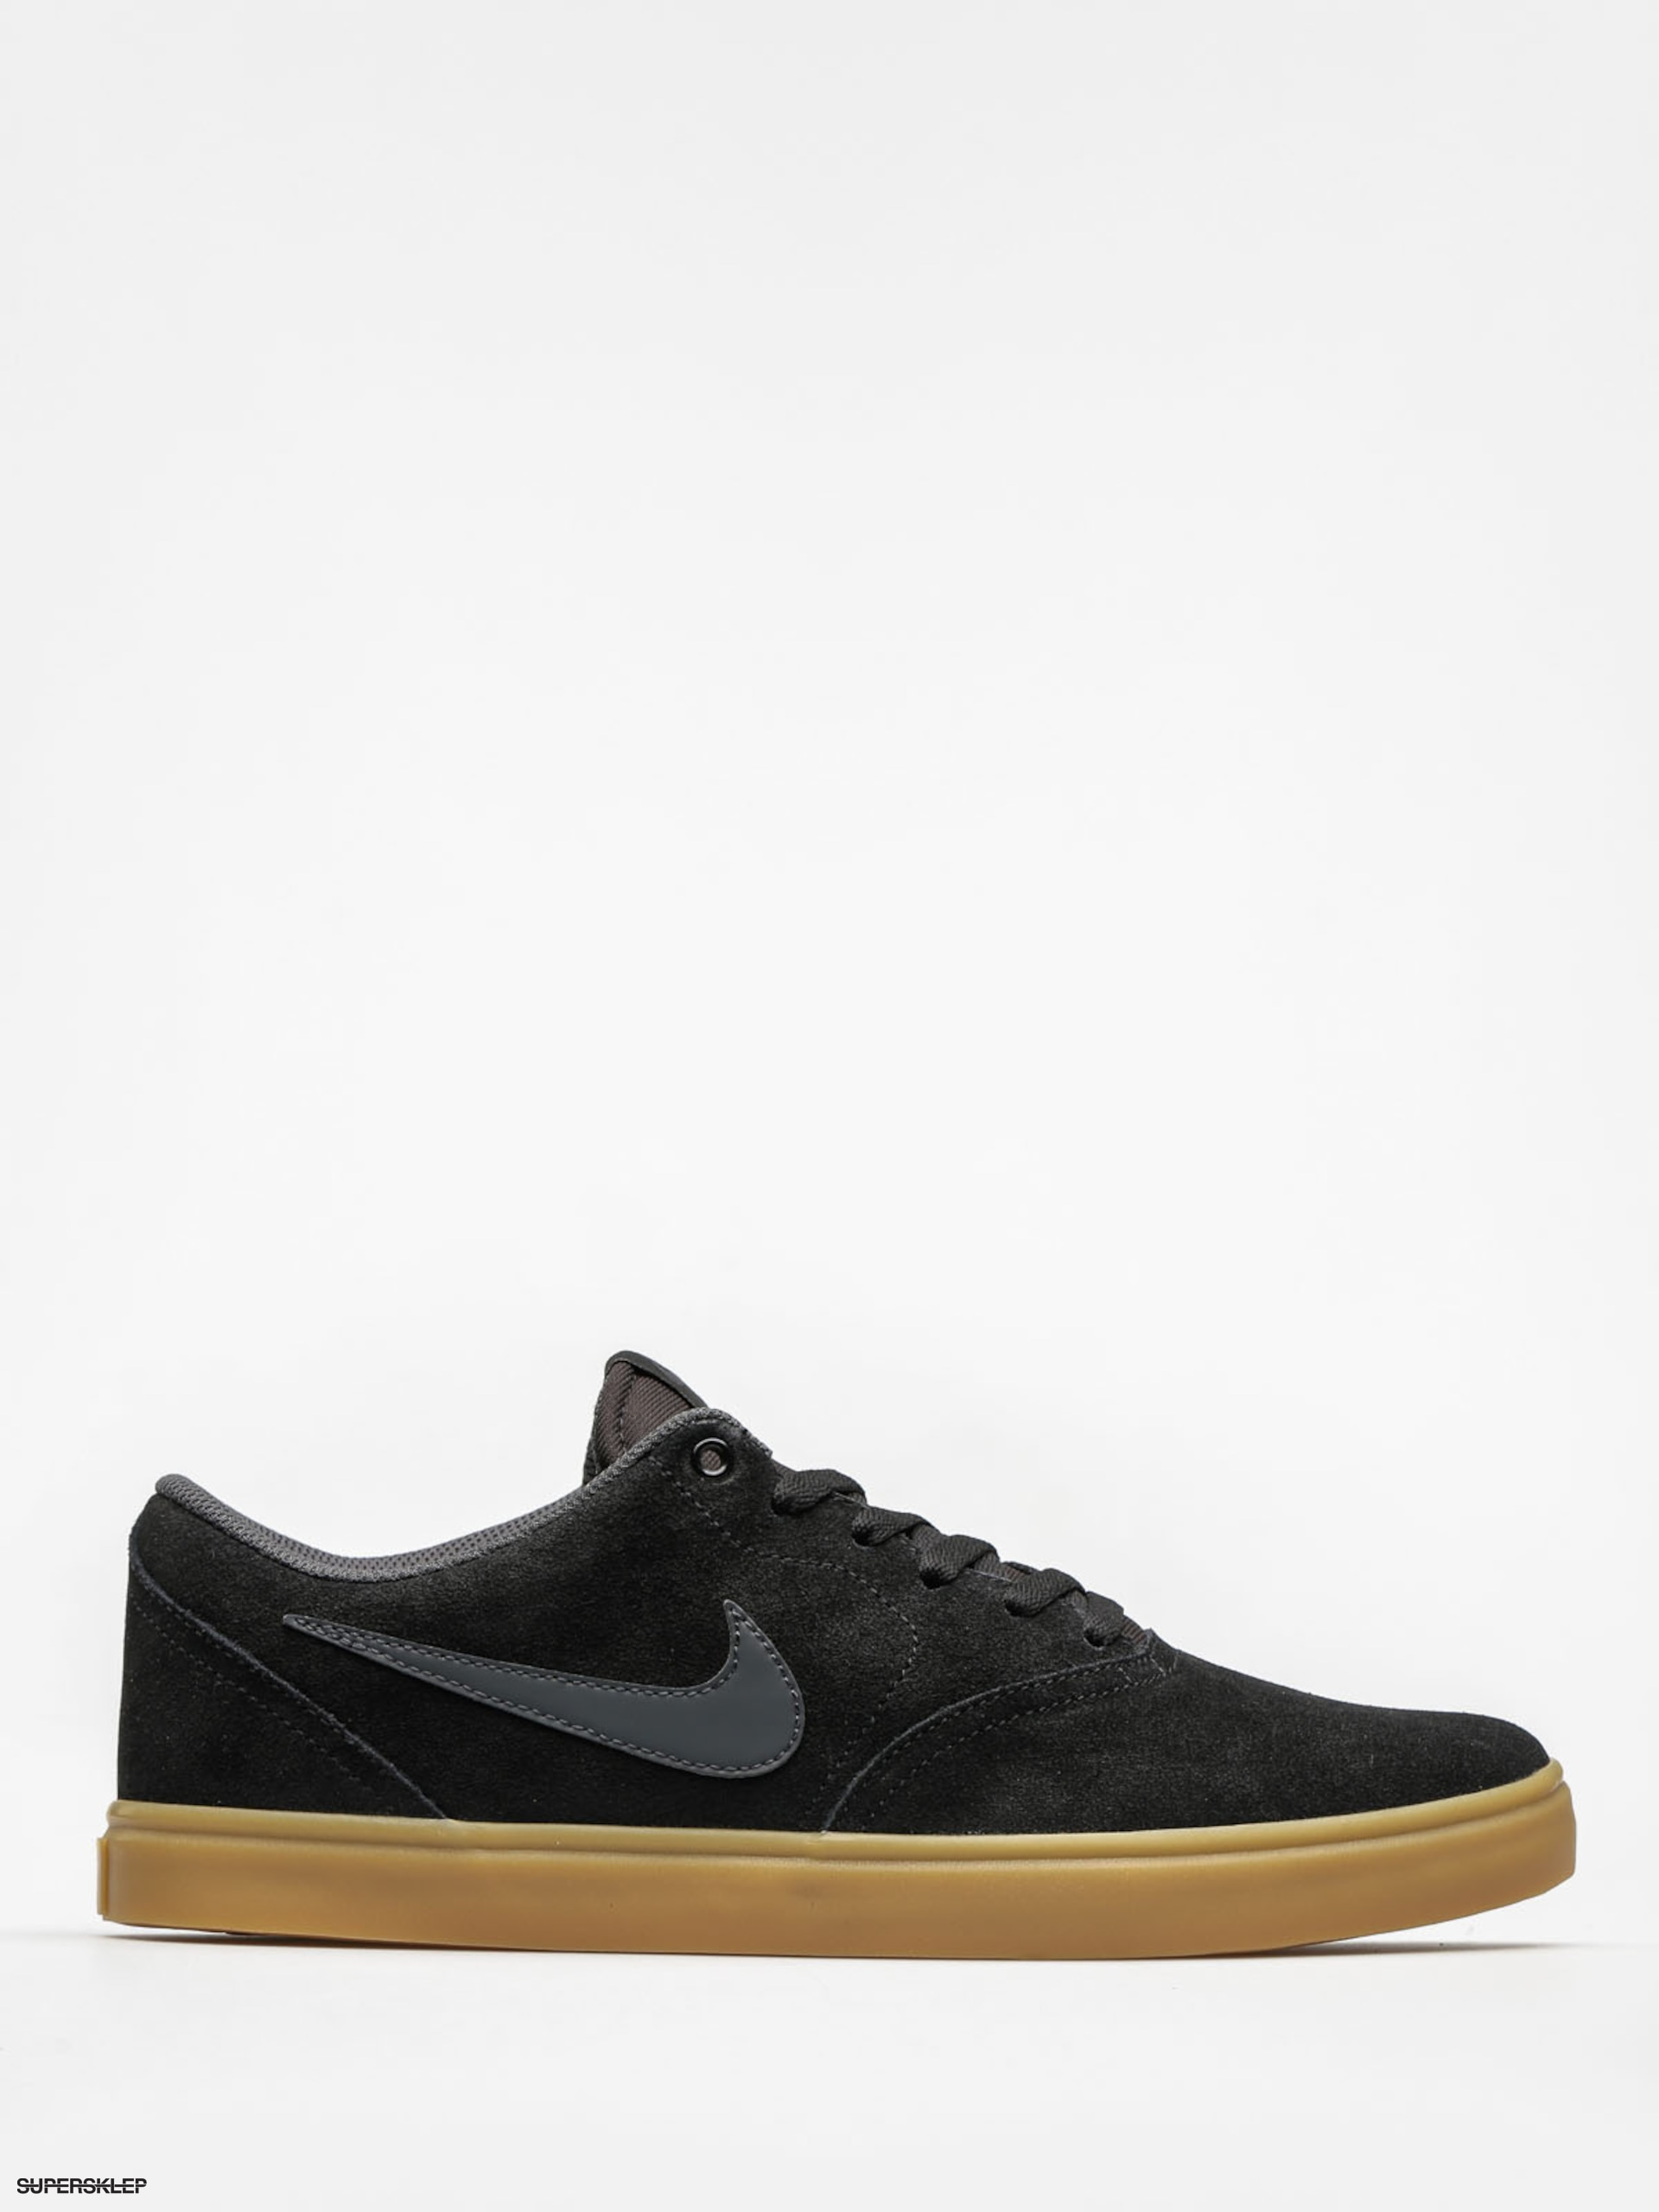 6f9166838491 Buty Nike SB Check Solar (bkack anthracite gum dark brown)